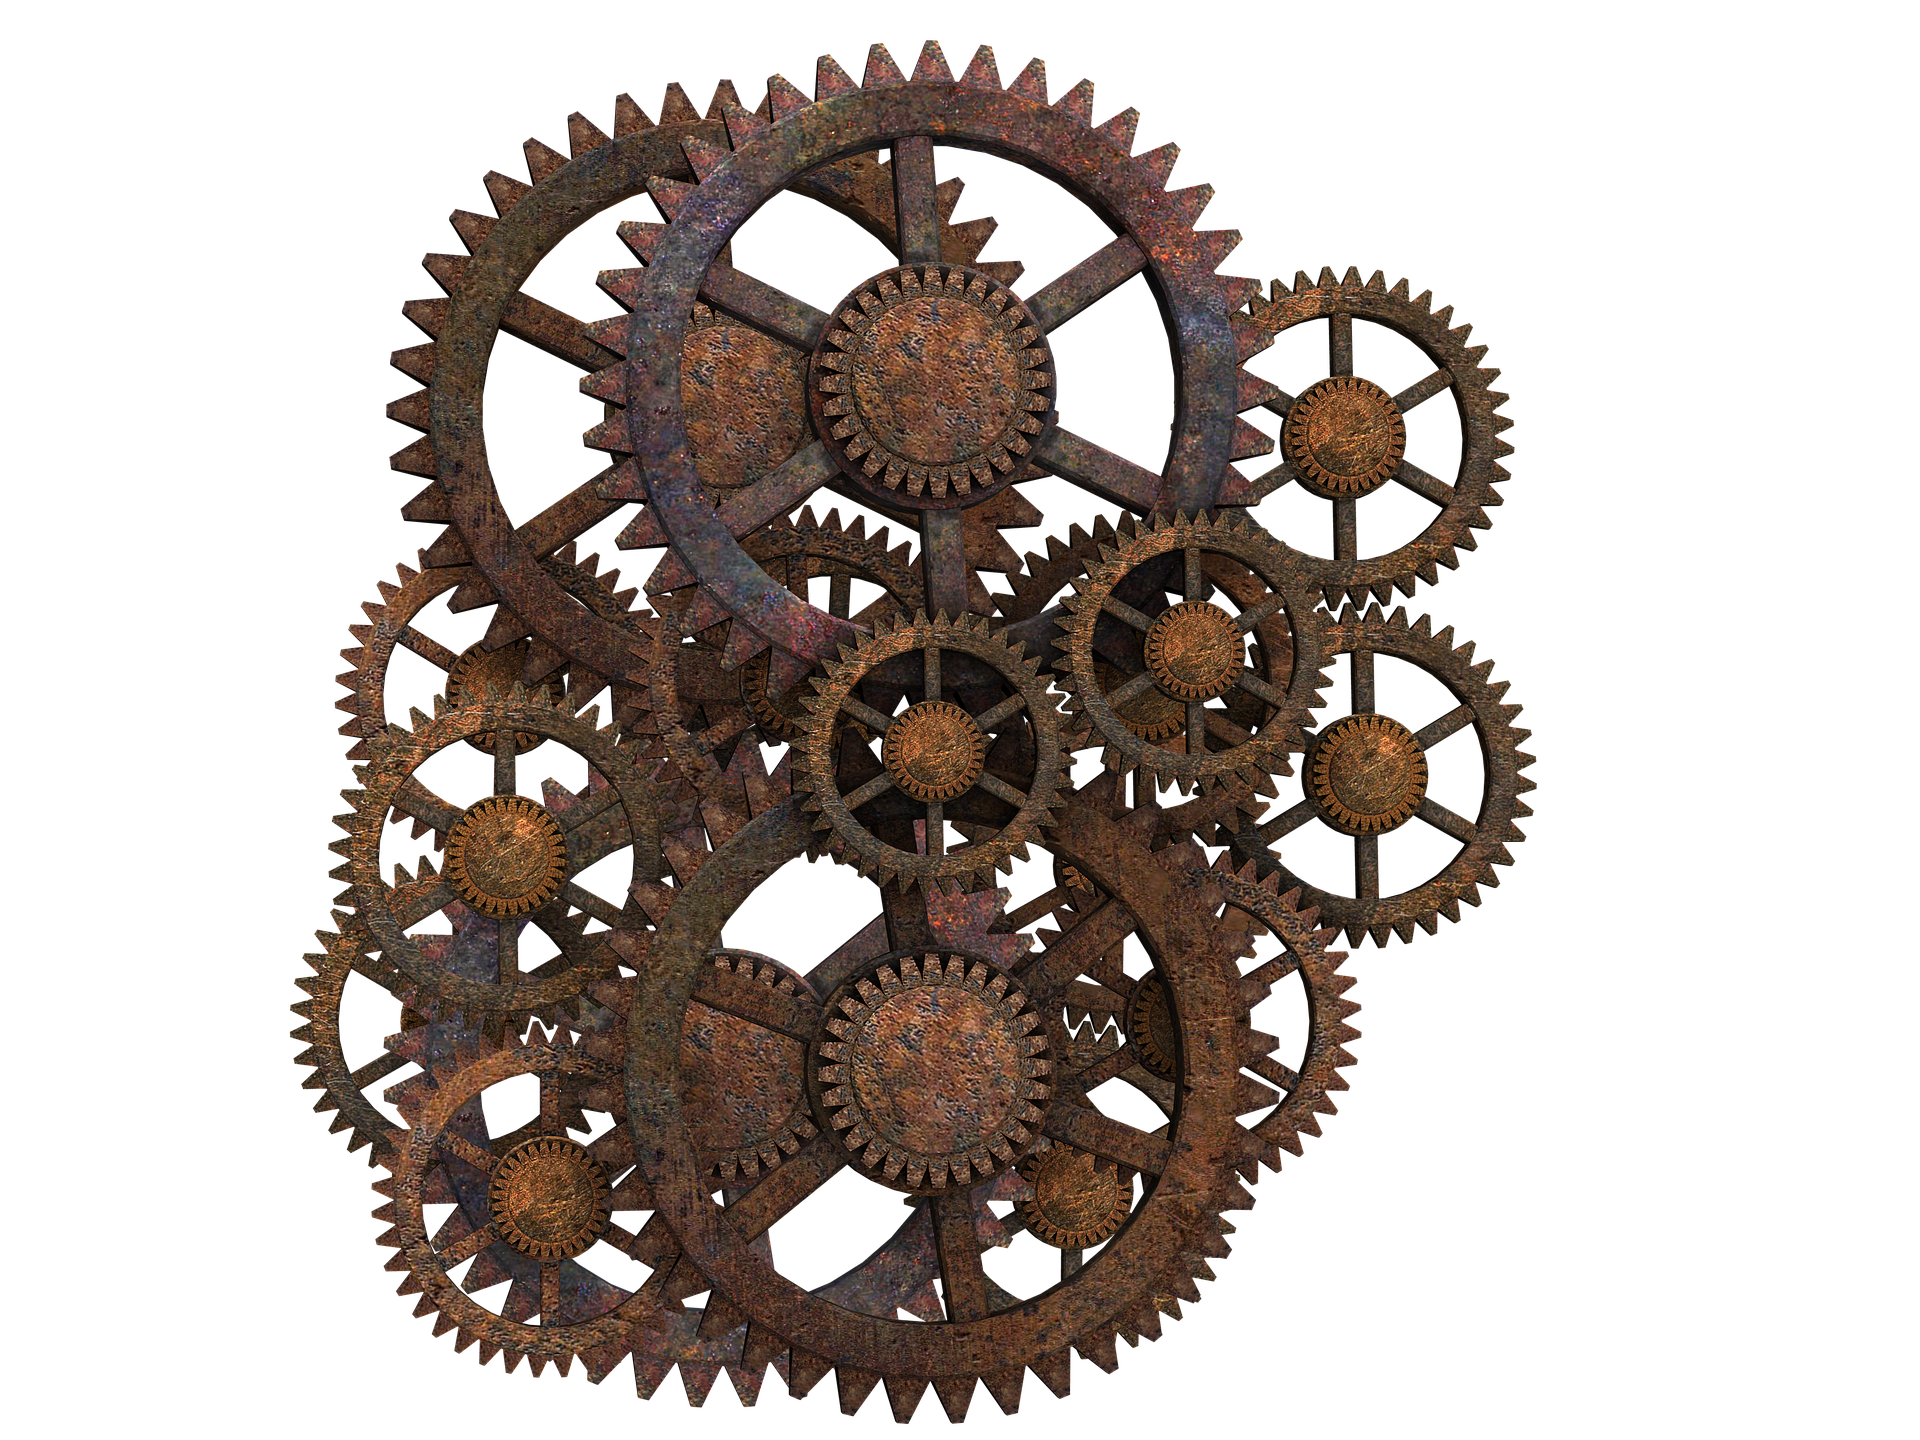 gear-1127518_1920.png